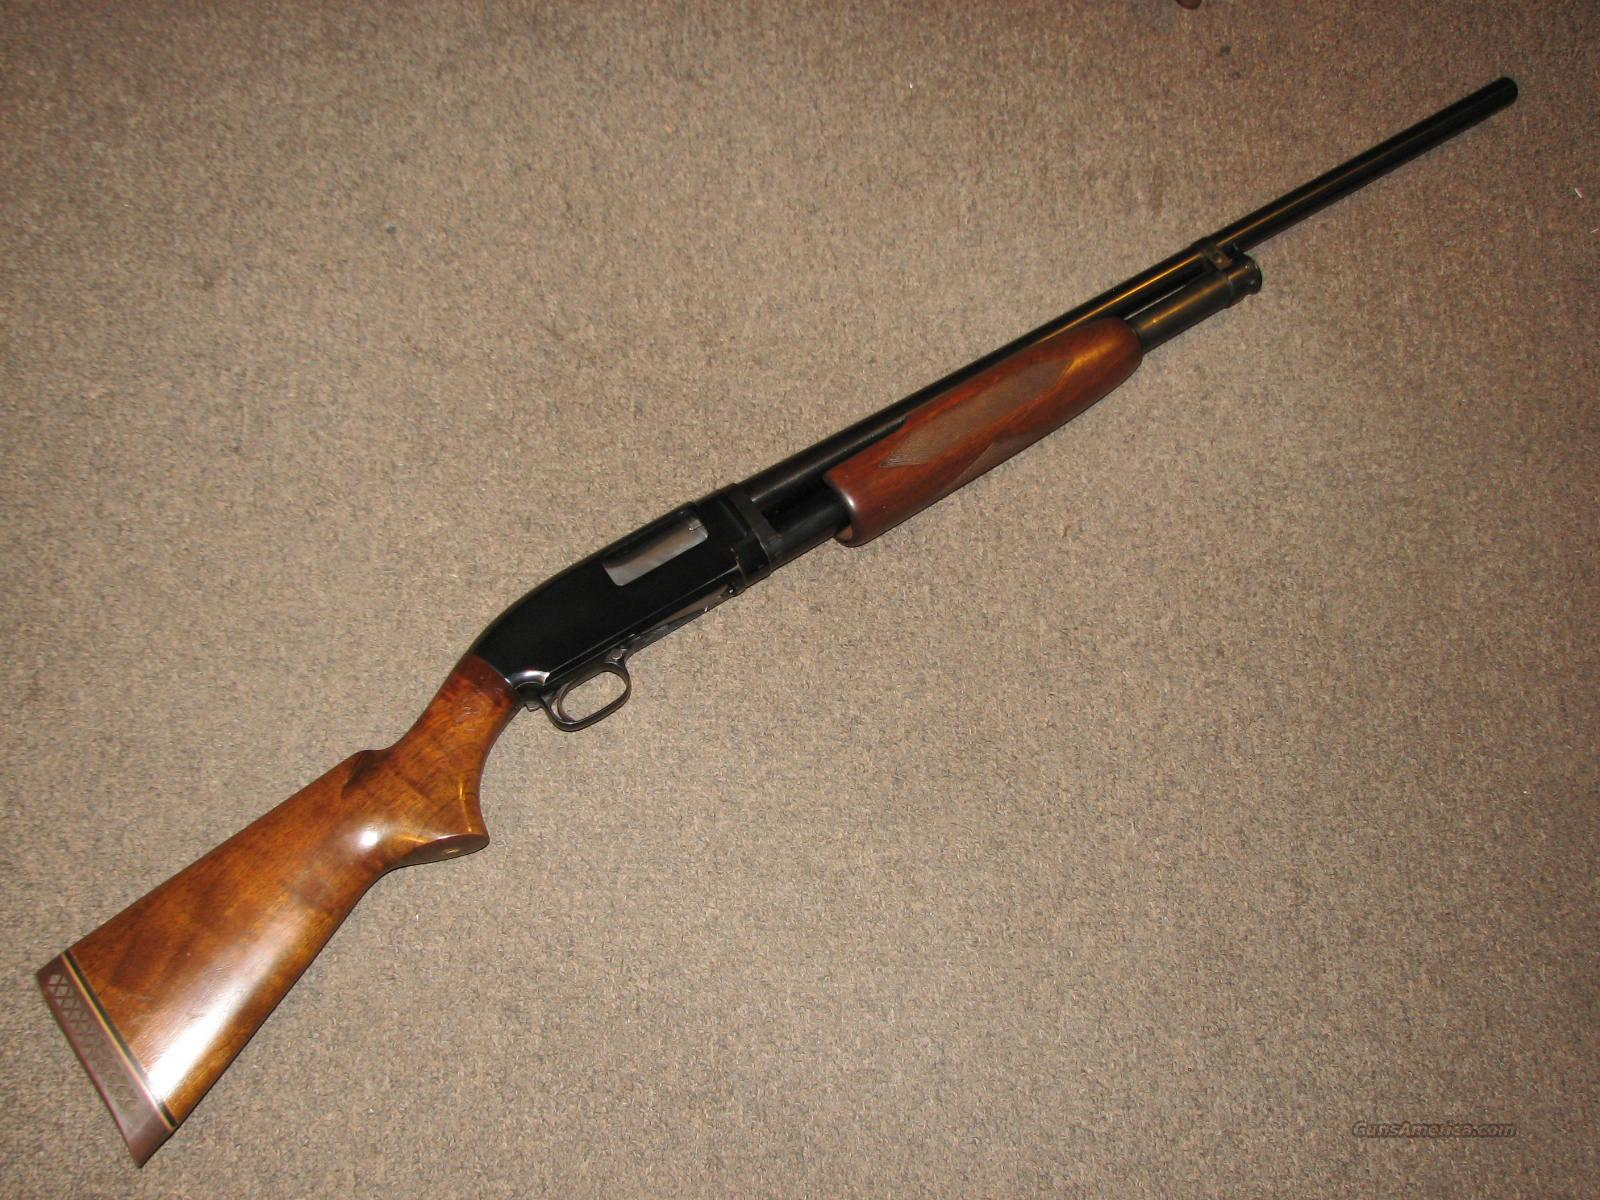 WINCHESTER MODEL 12 FIELD w/ DELUXE WALNUT - Mfg 1959  Guns > Shotguns > Winchester Shotguns - Modern > Pump Action > Hunting